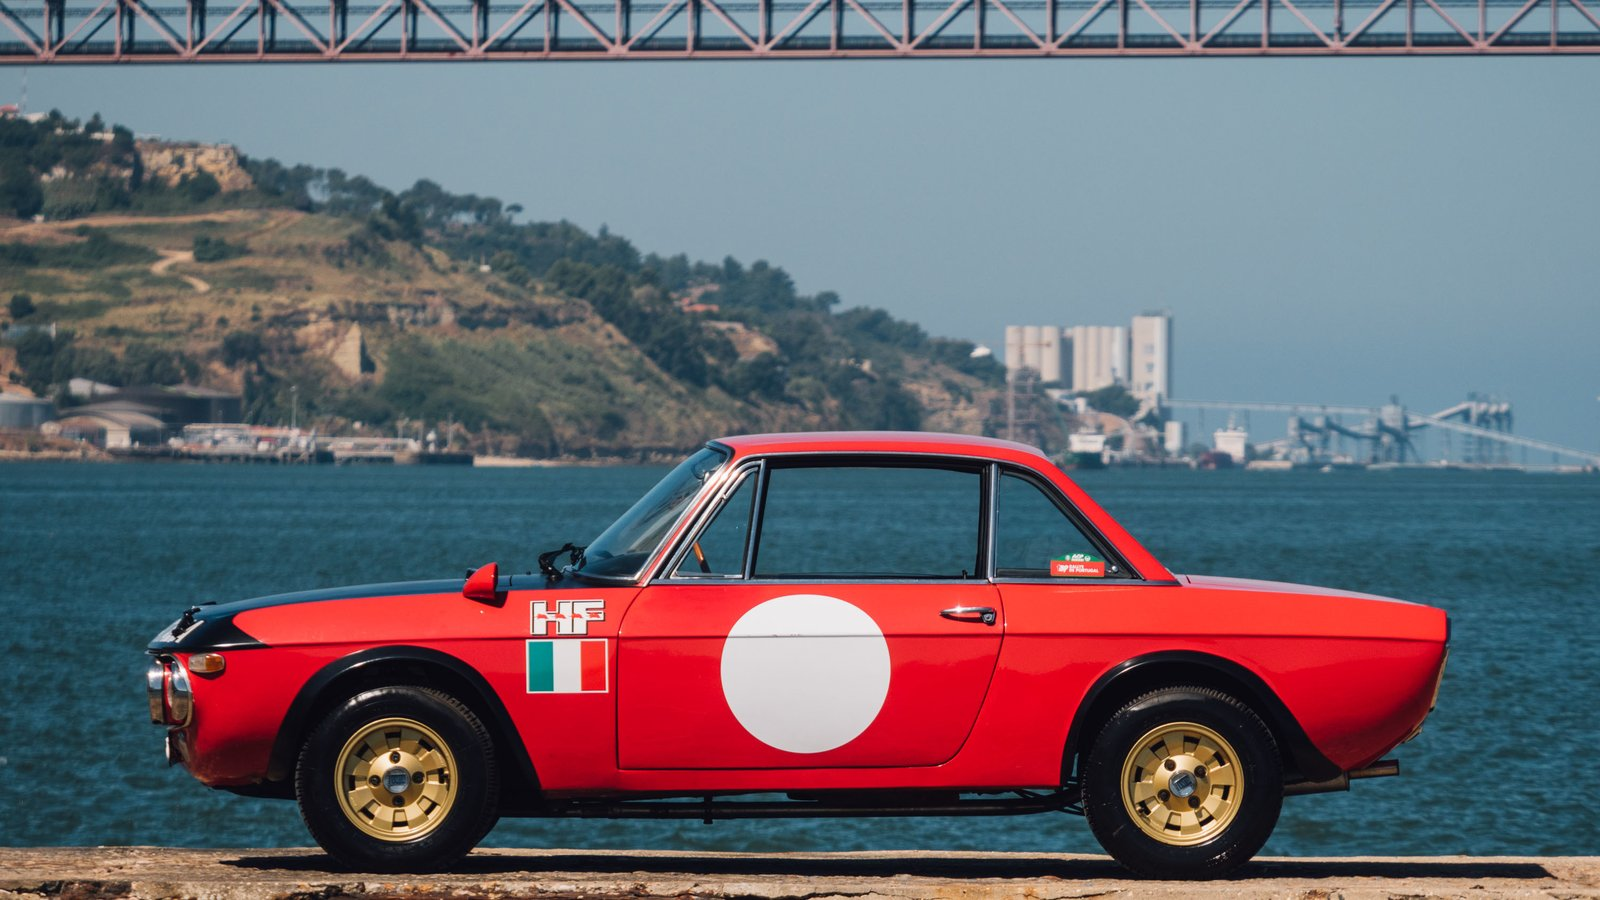 Lancia Fulvia Rally 1.6 HF Fanalone   Cars by MVMT Asia from Four Wheels